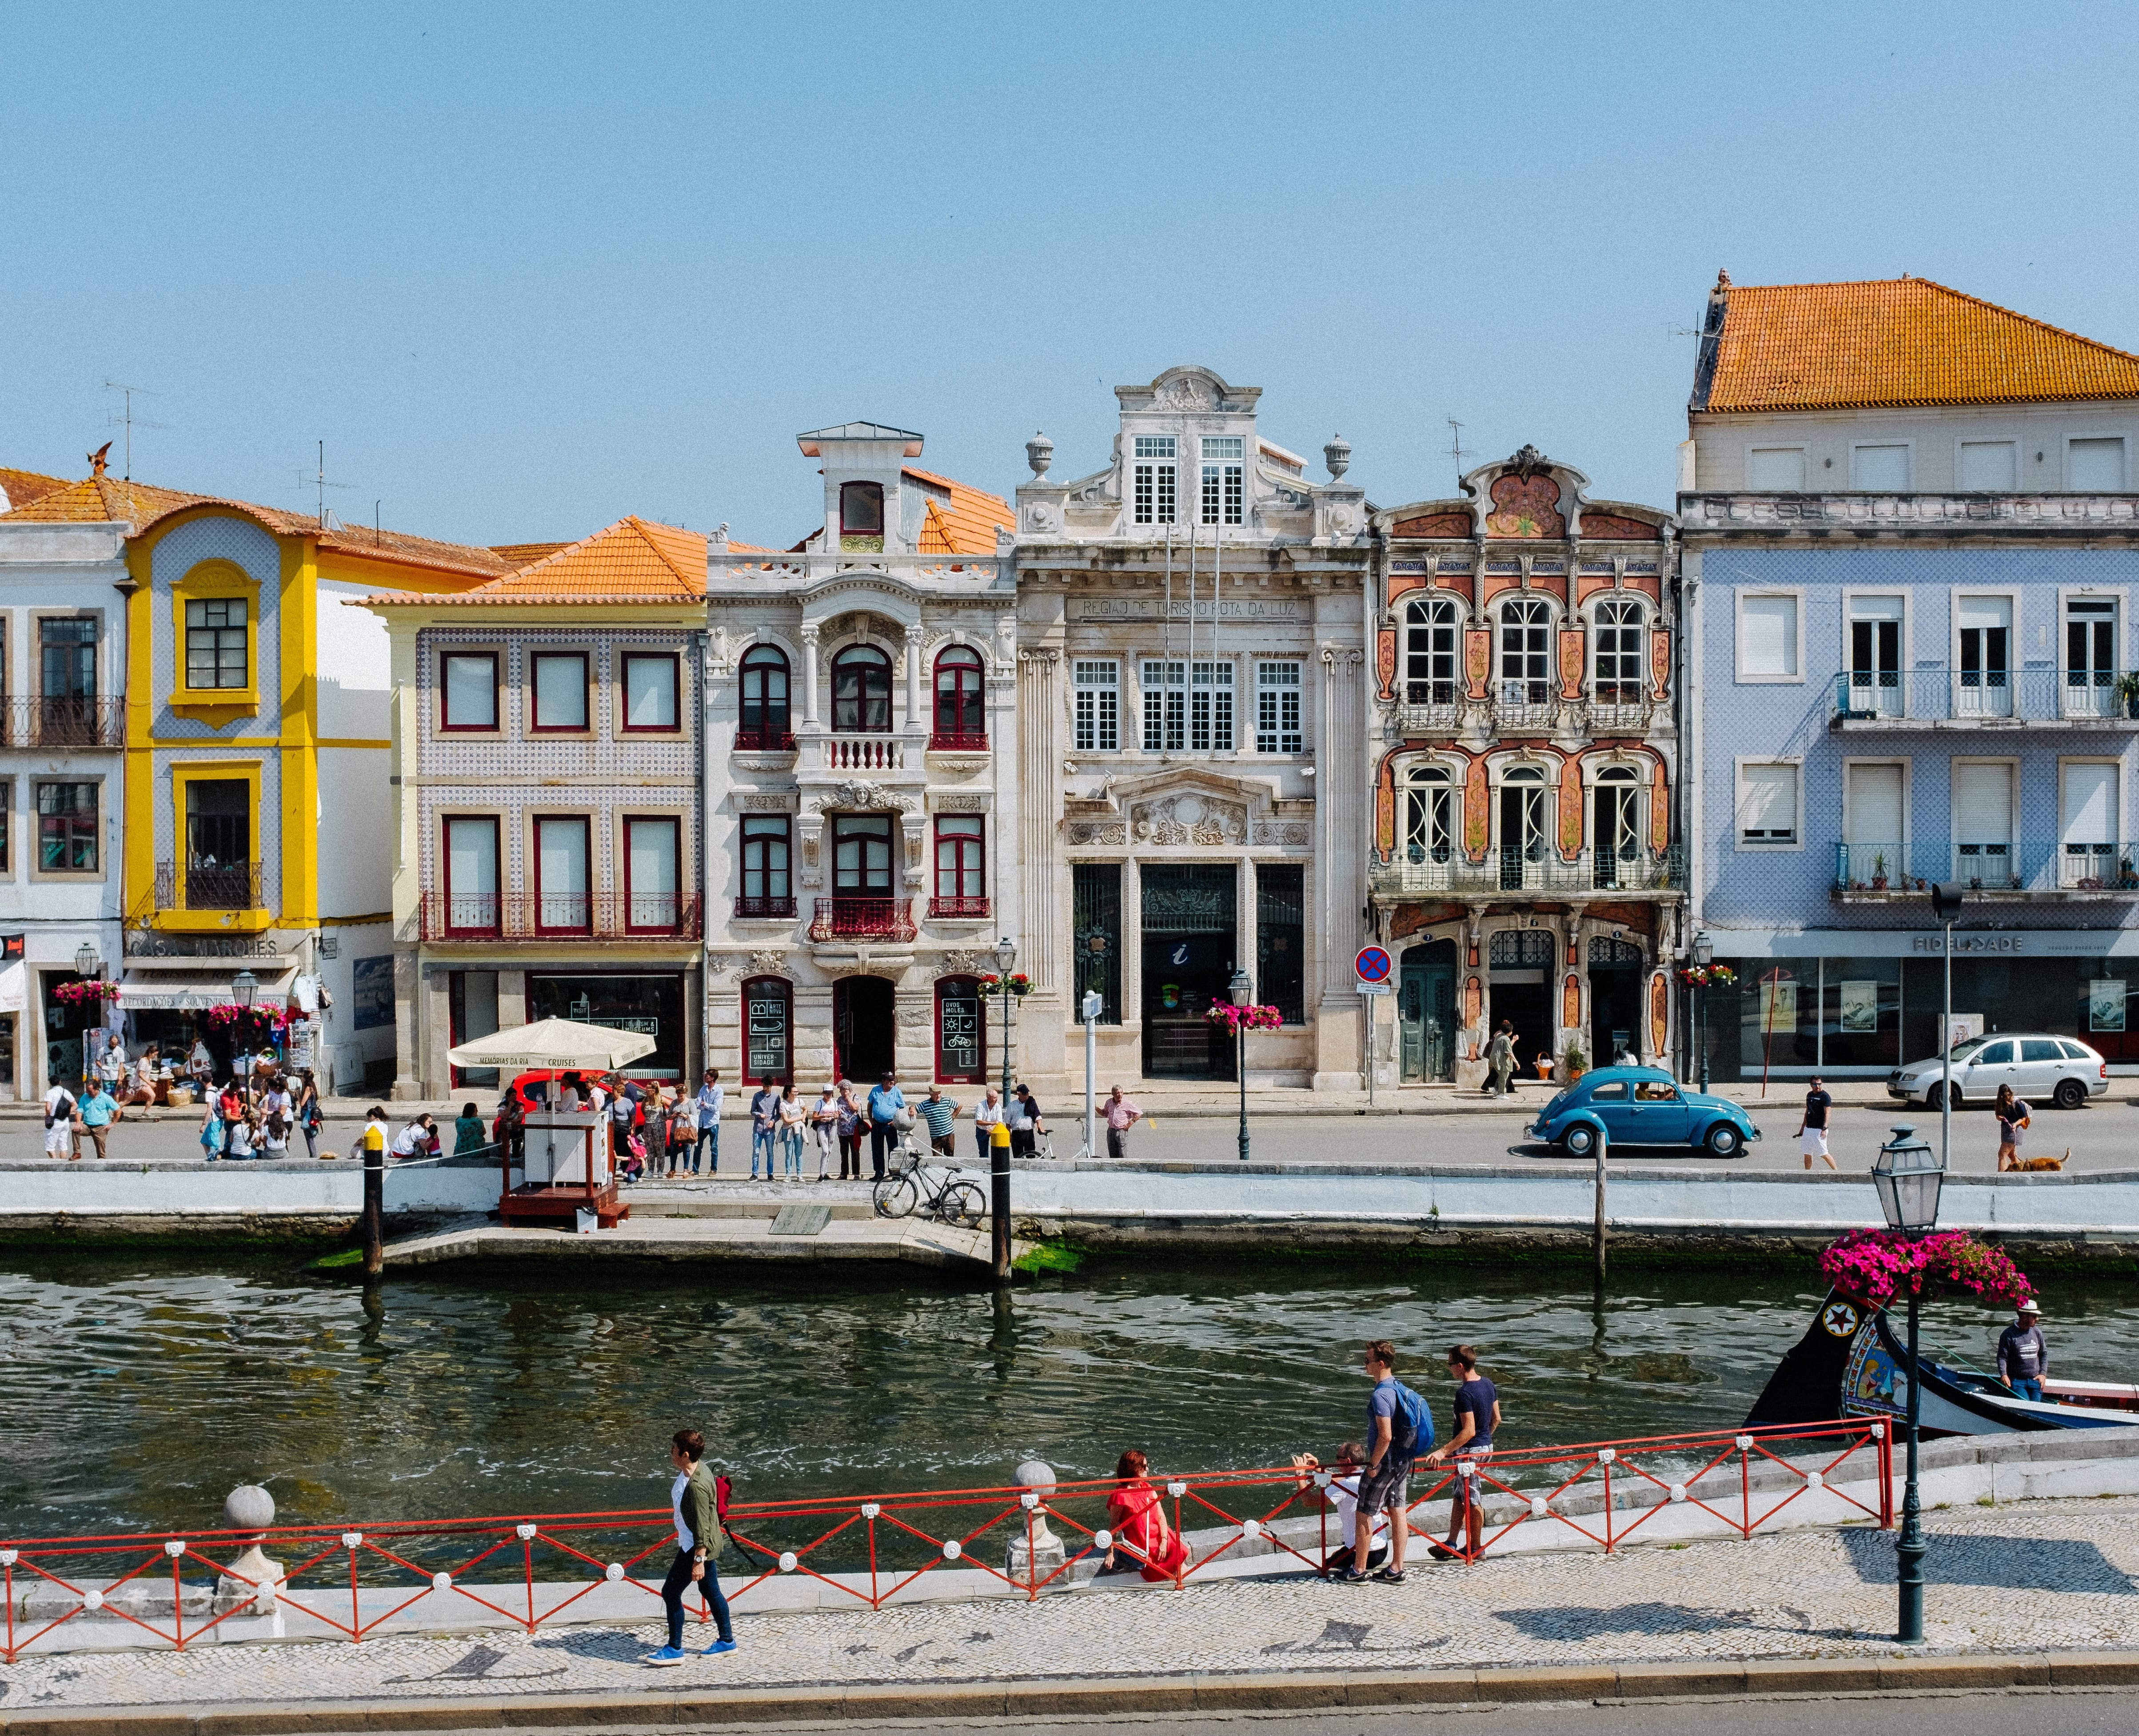 portugal - colorful buildings on water